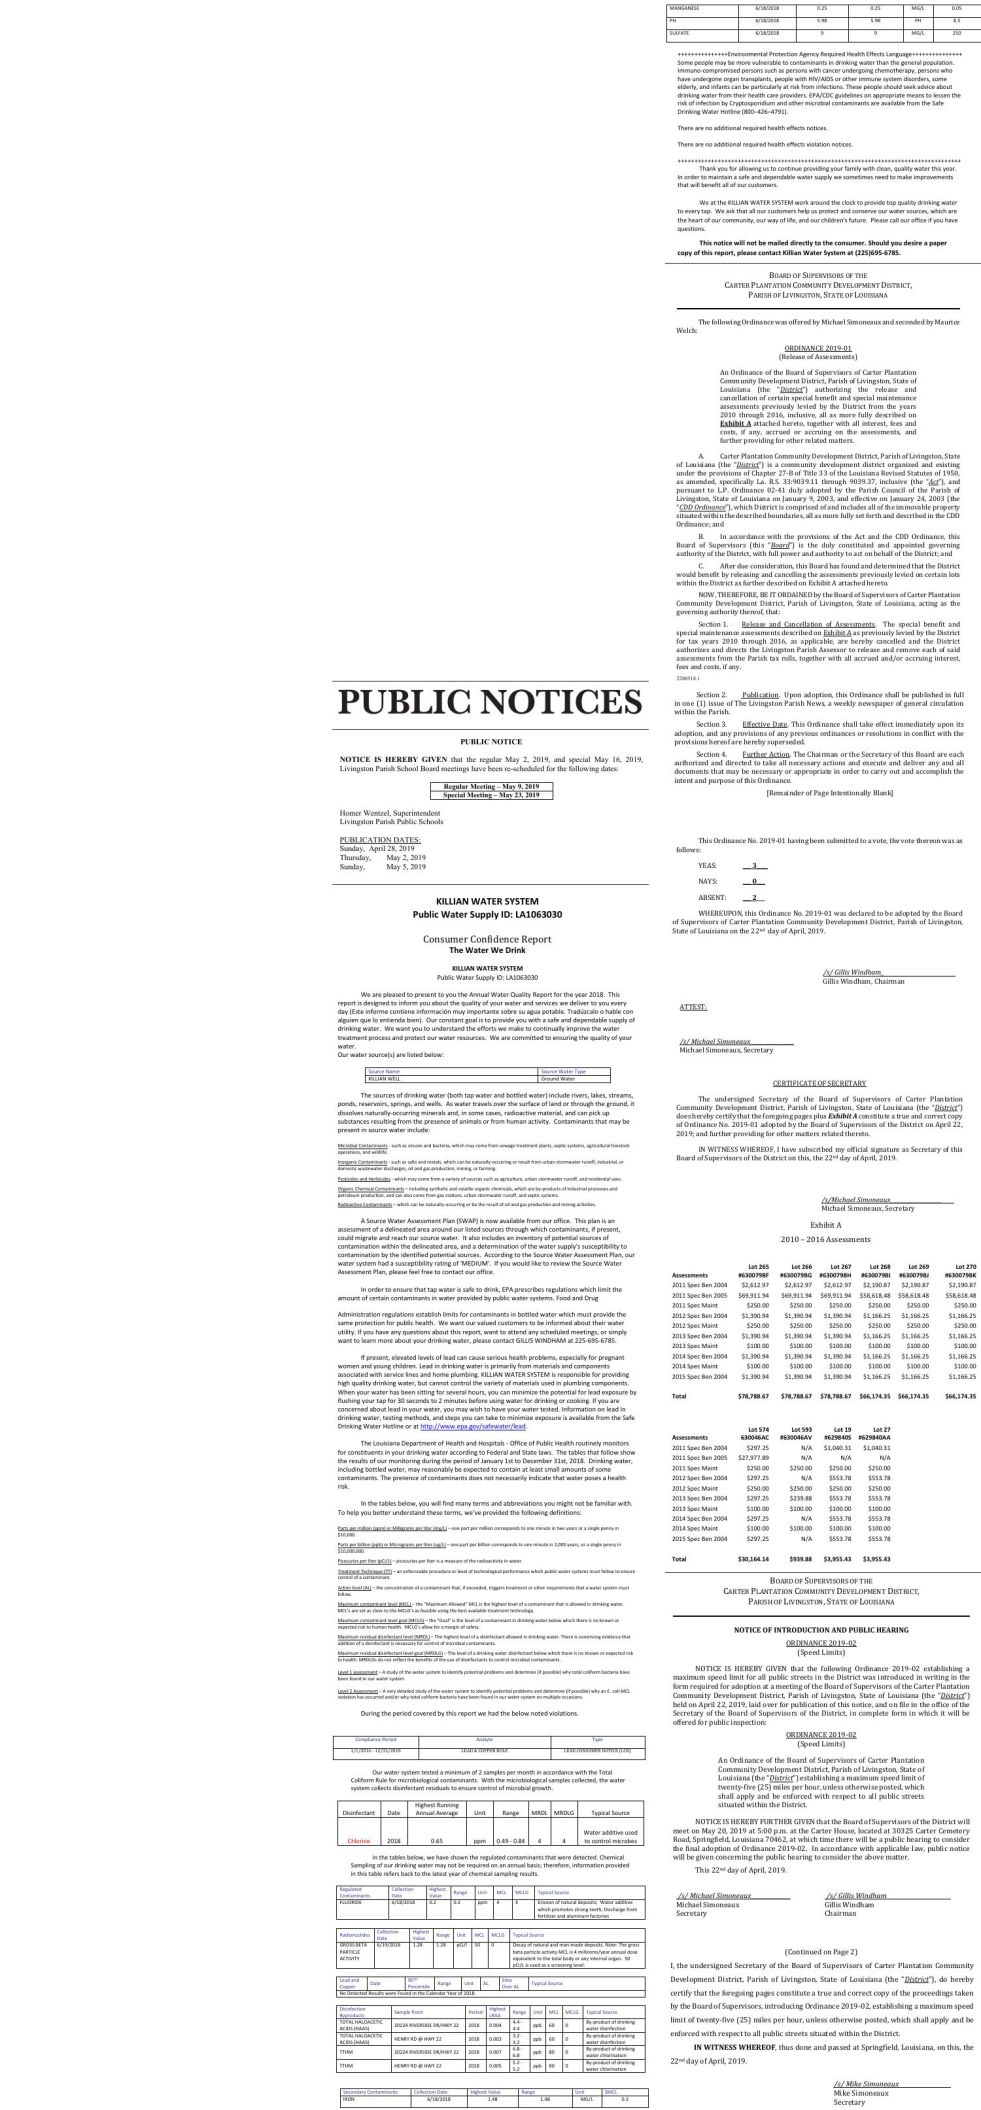 Public Notices published May 5, 2019